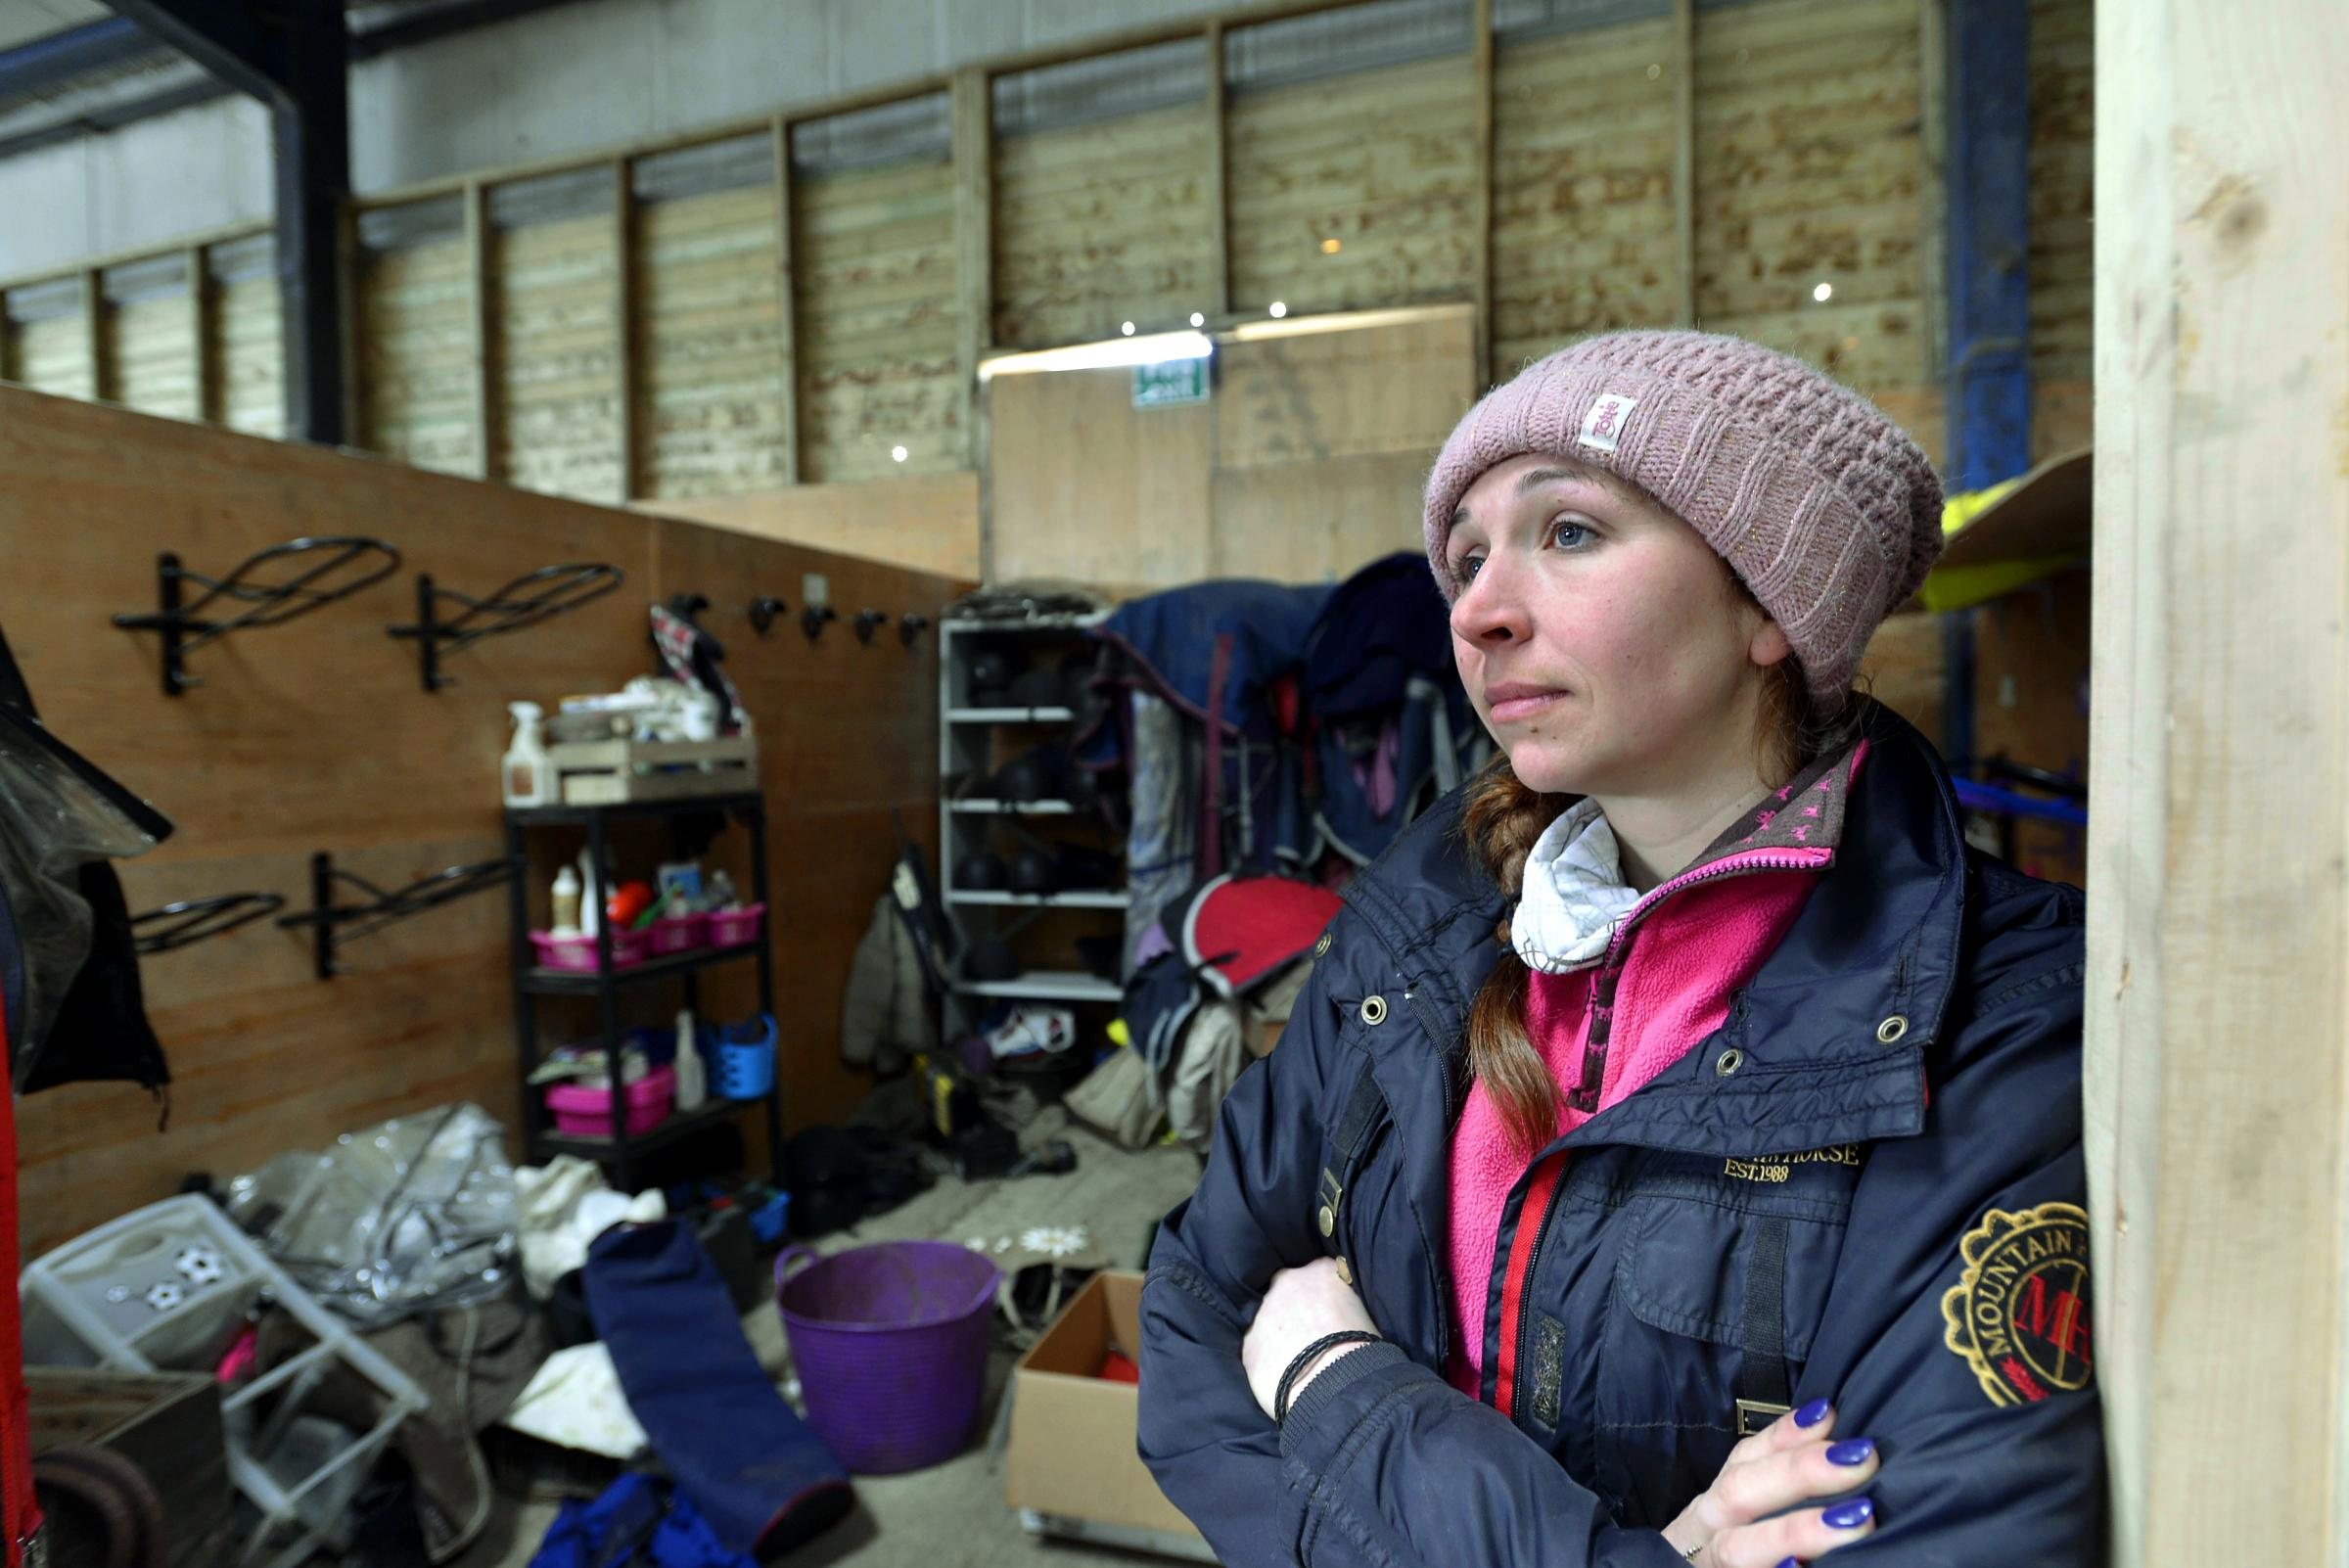 Equestrian centre owner Nicki Whaites in the empty tack room that was raided